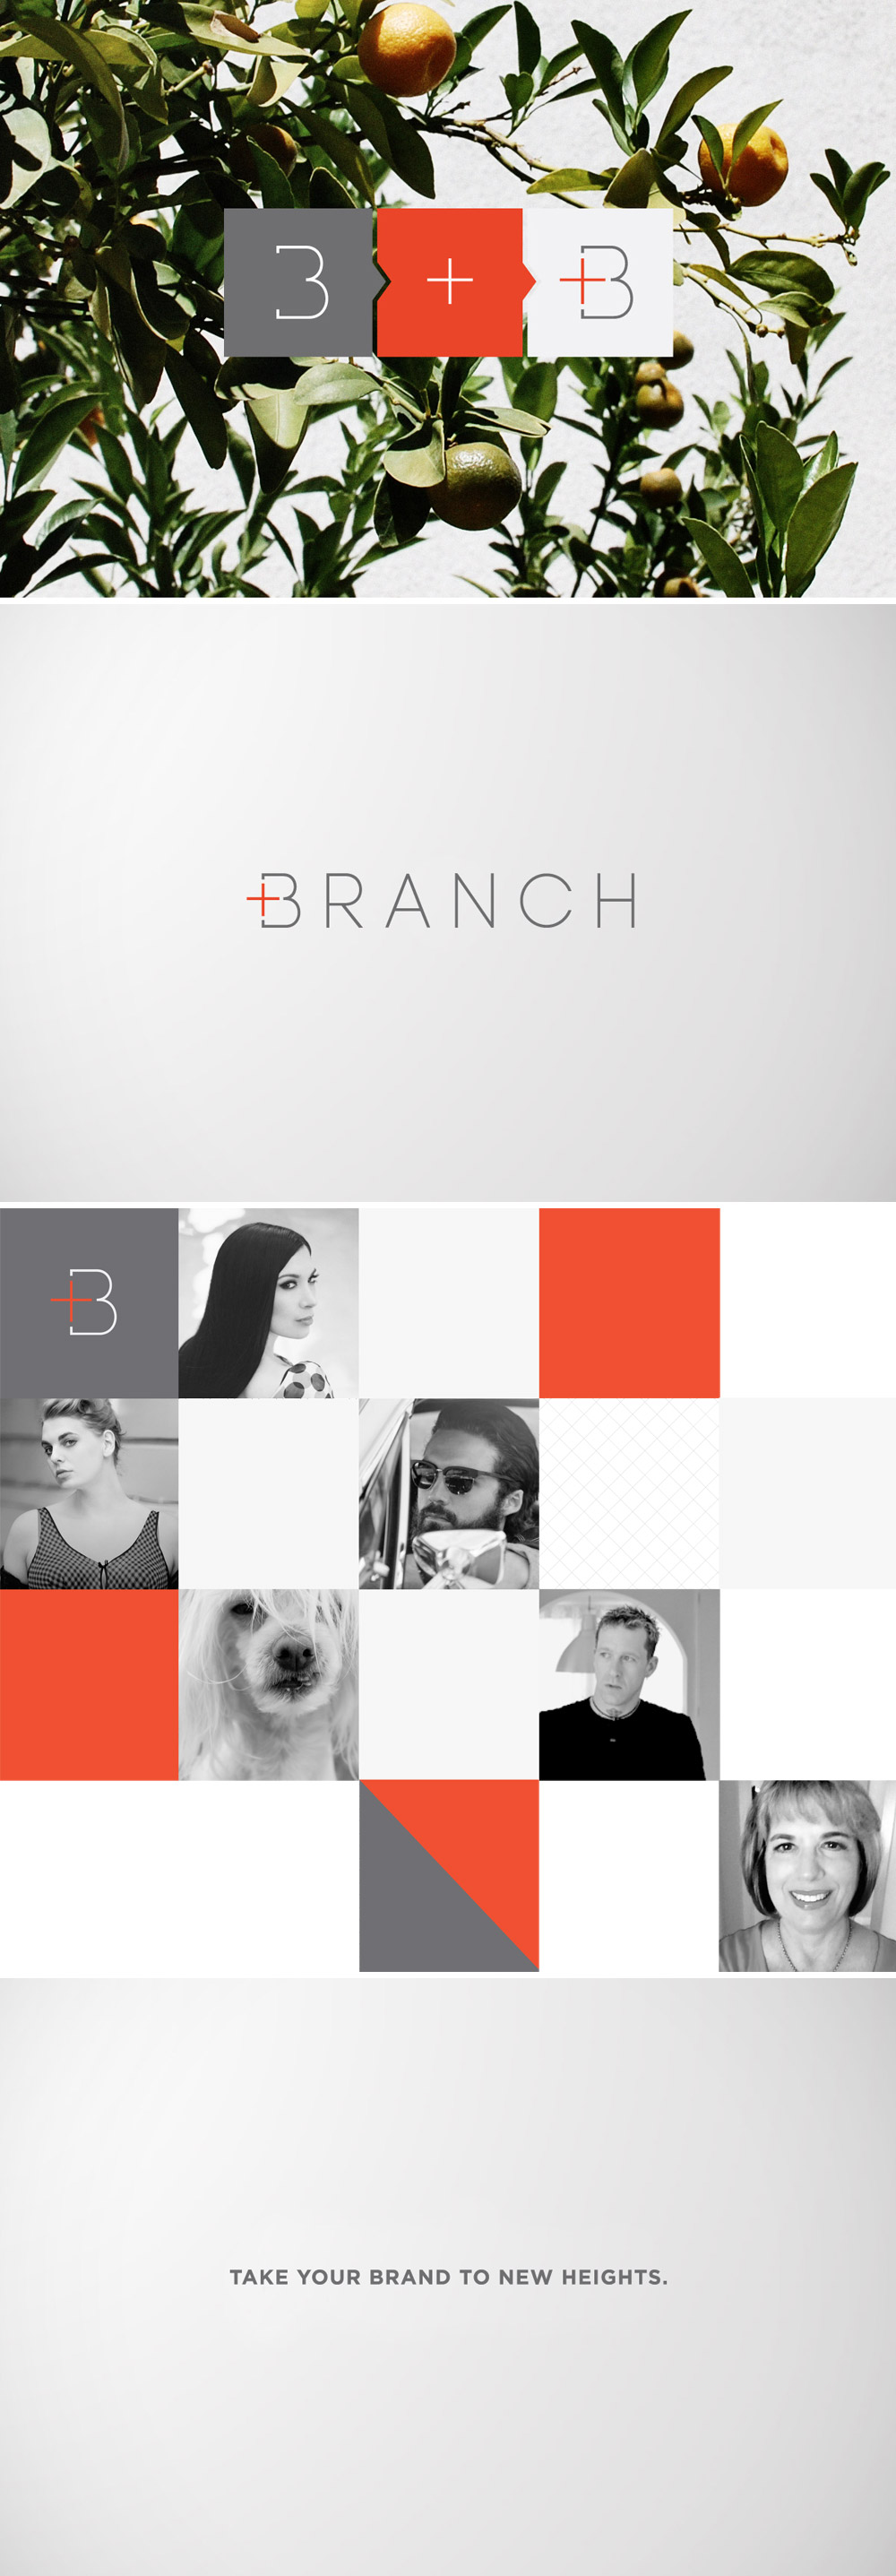 Branch | Happy Branchiversary! One Year Of Running A Design Studio Plus 5 Tips For Small Businesses